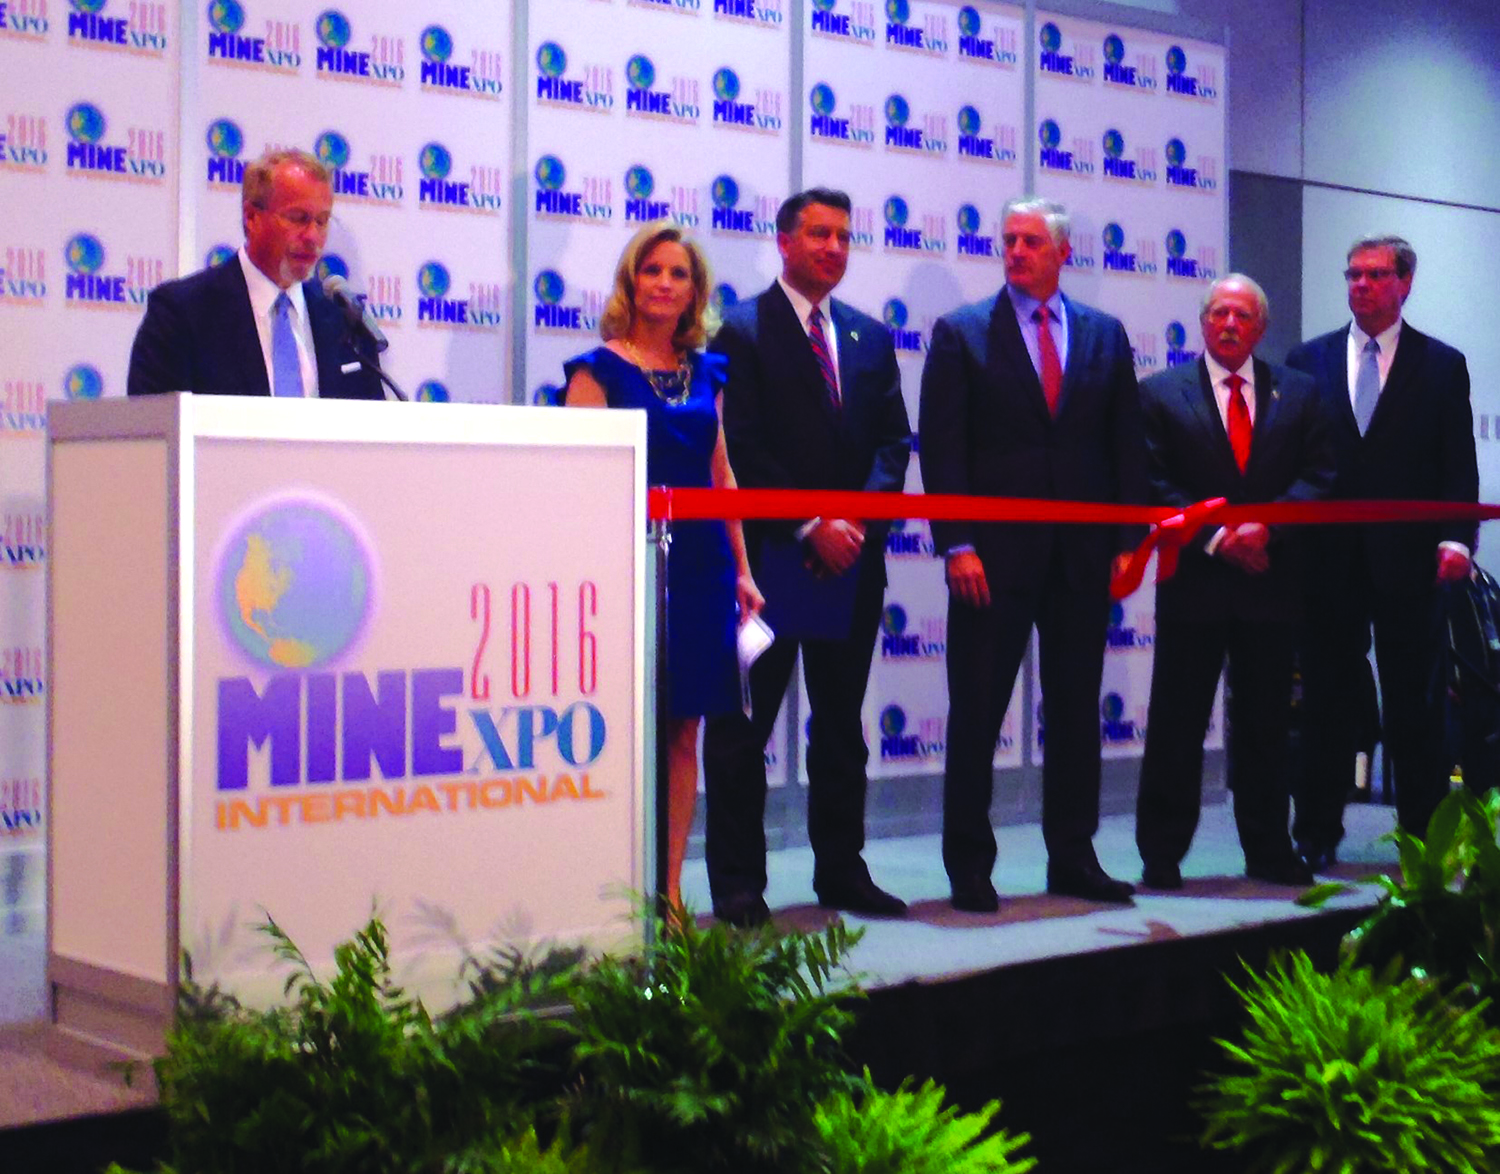 From the left: Kevin Crutchfield, Contura Energy; Denise Johnson, Caterpillar; Nevada Gov. Brian Sandoval; Phillips S. Baker, Hecla Mining Co.; Douglas Hardman, J.H. Fletcher & Co.; and Hal Quinn, NMA, opened the show with a ribbon-cutting ceremony. An estimated 44,000 people attended the three-day event.